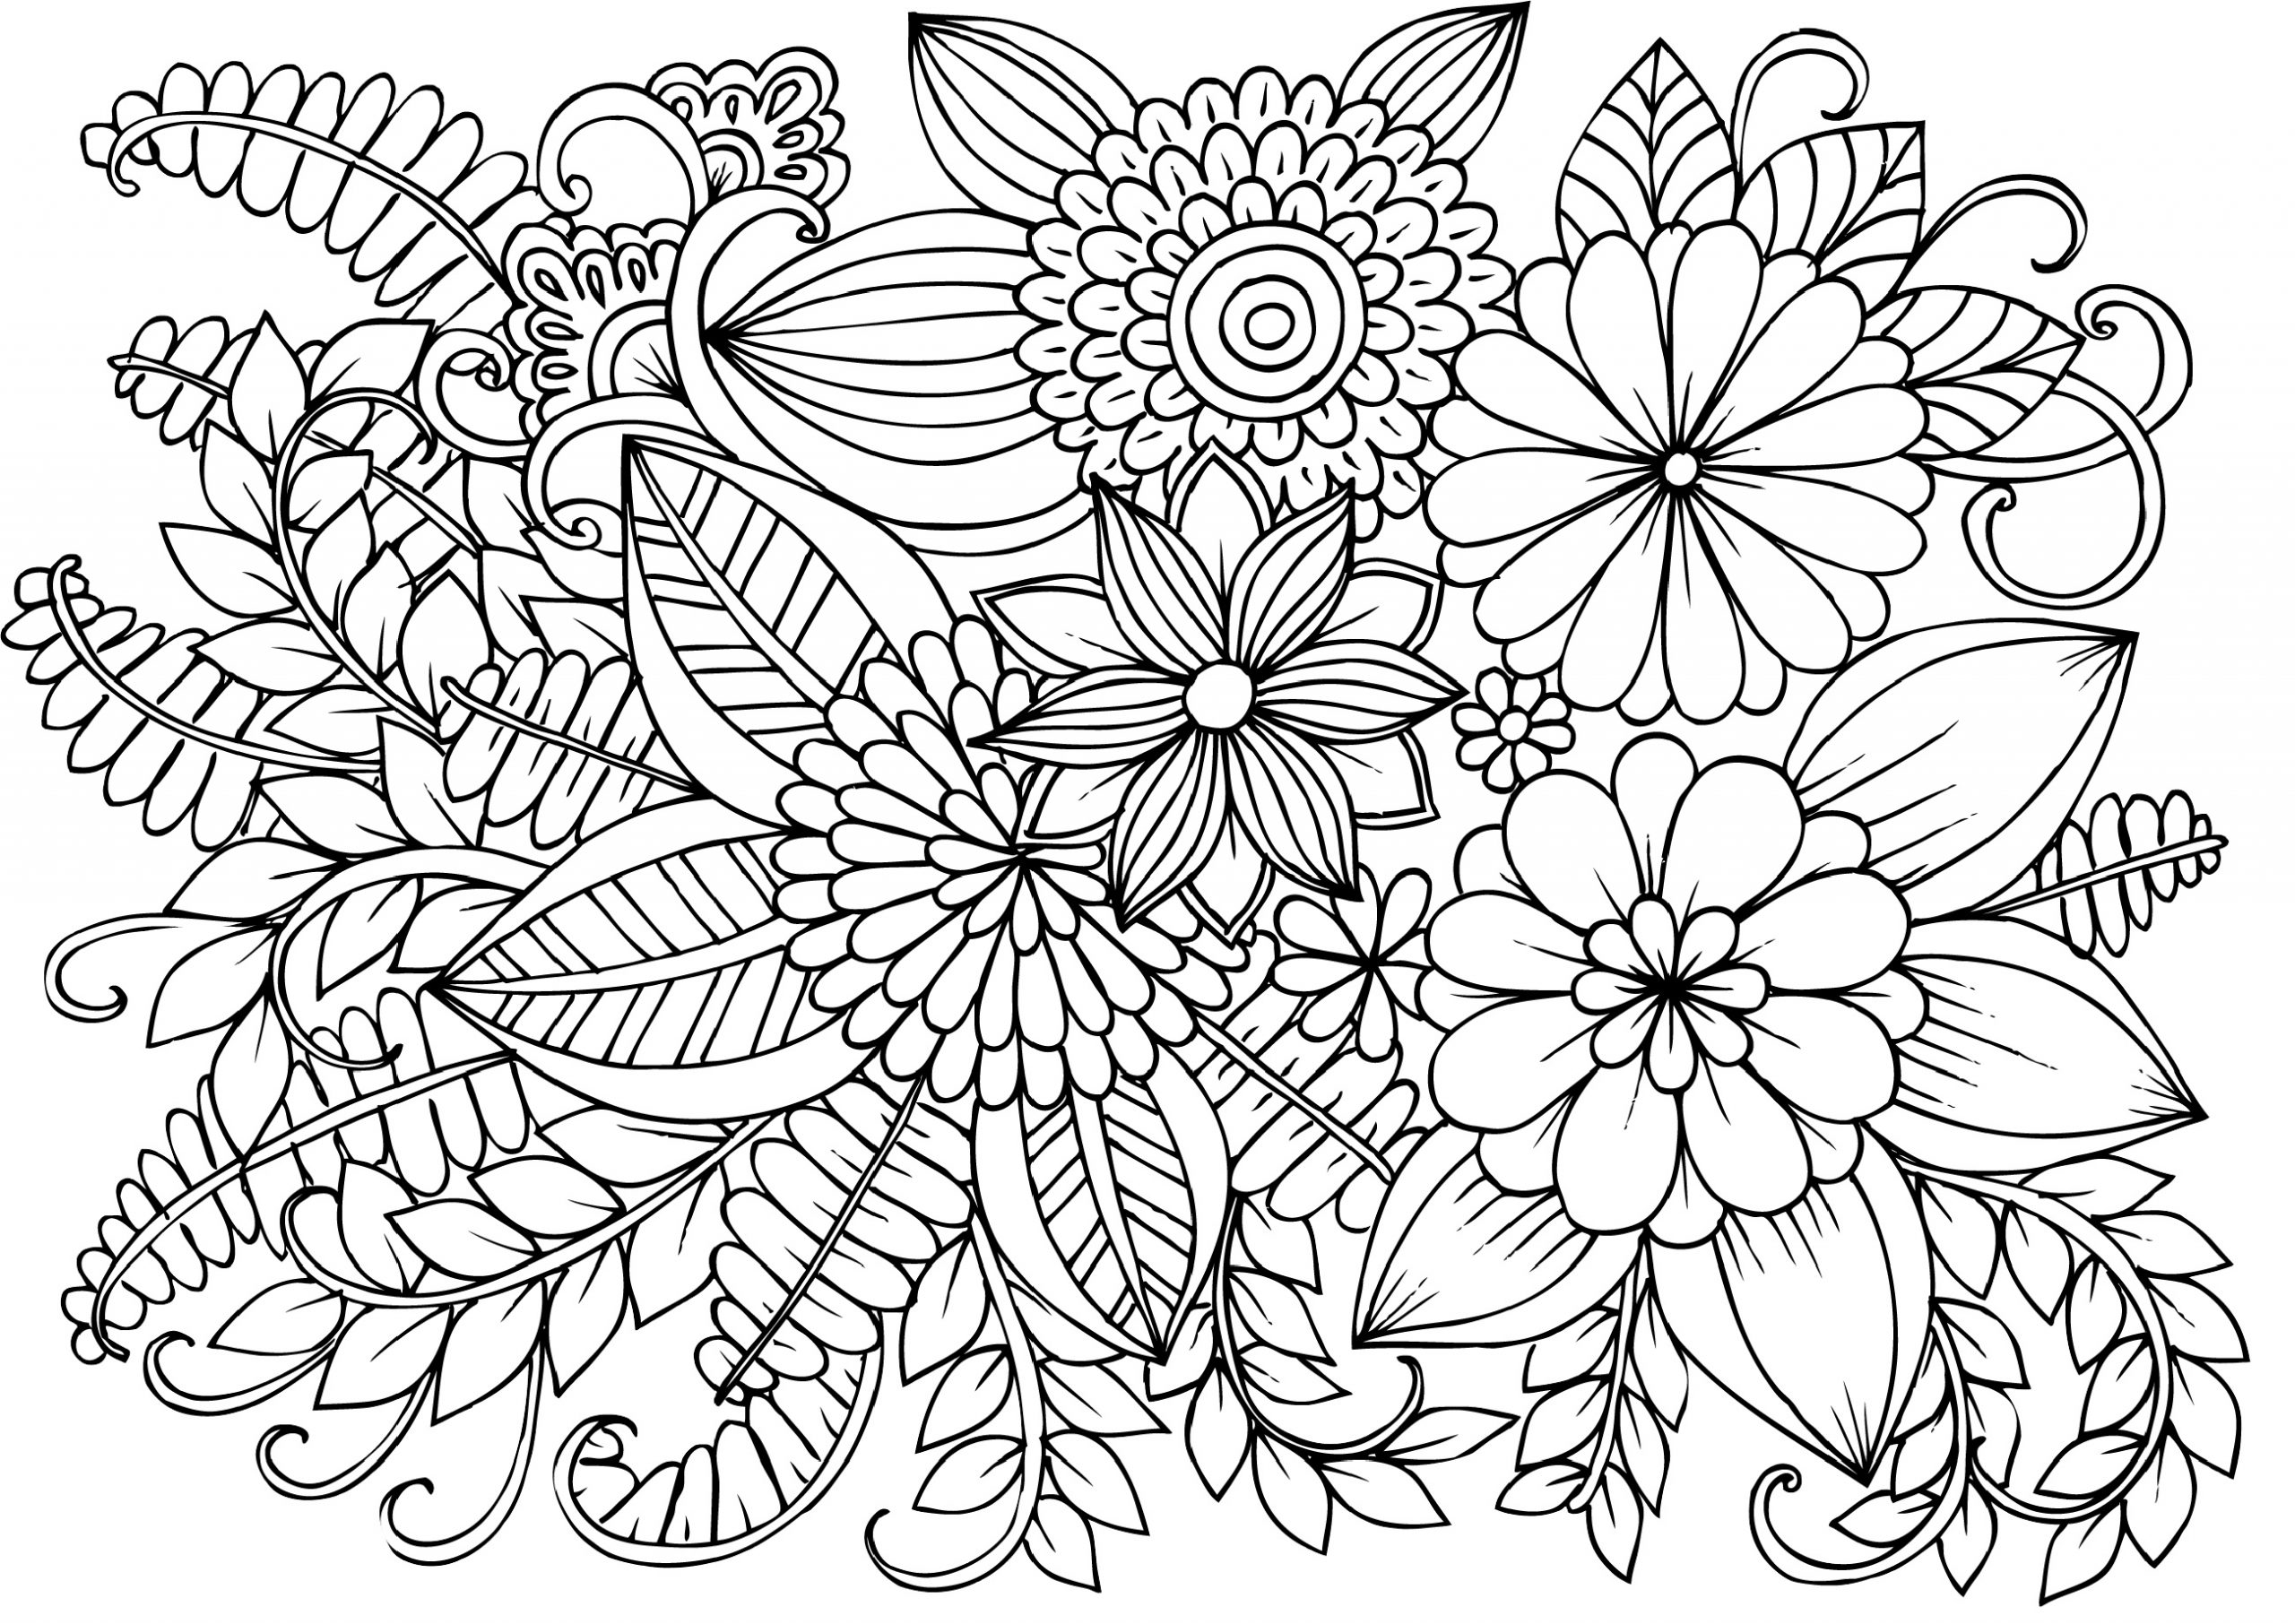 adult coloring pages flowers very detailed flowers coloring pages for adults hard to adult pages coloring flowers